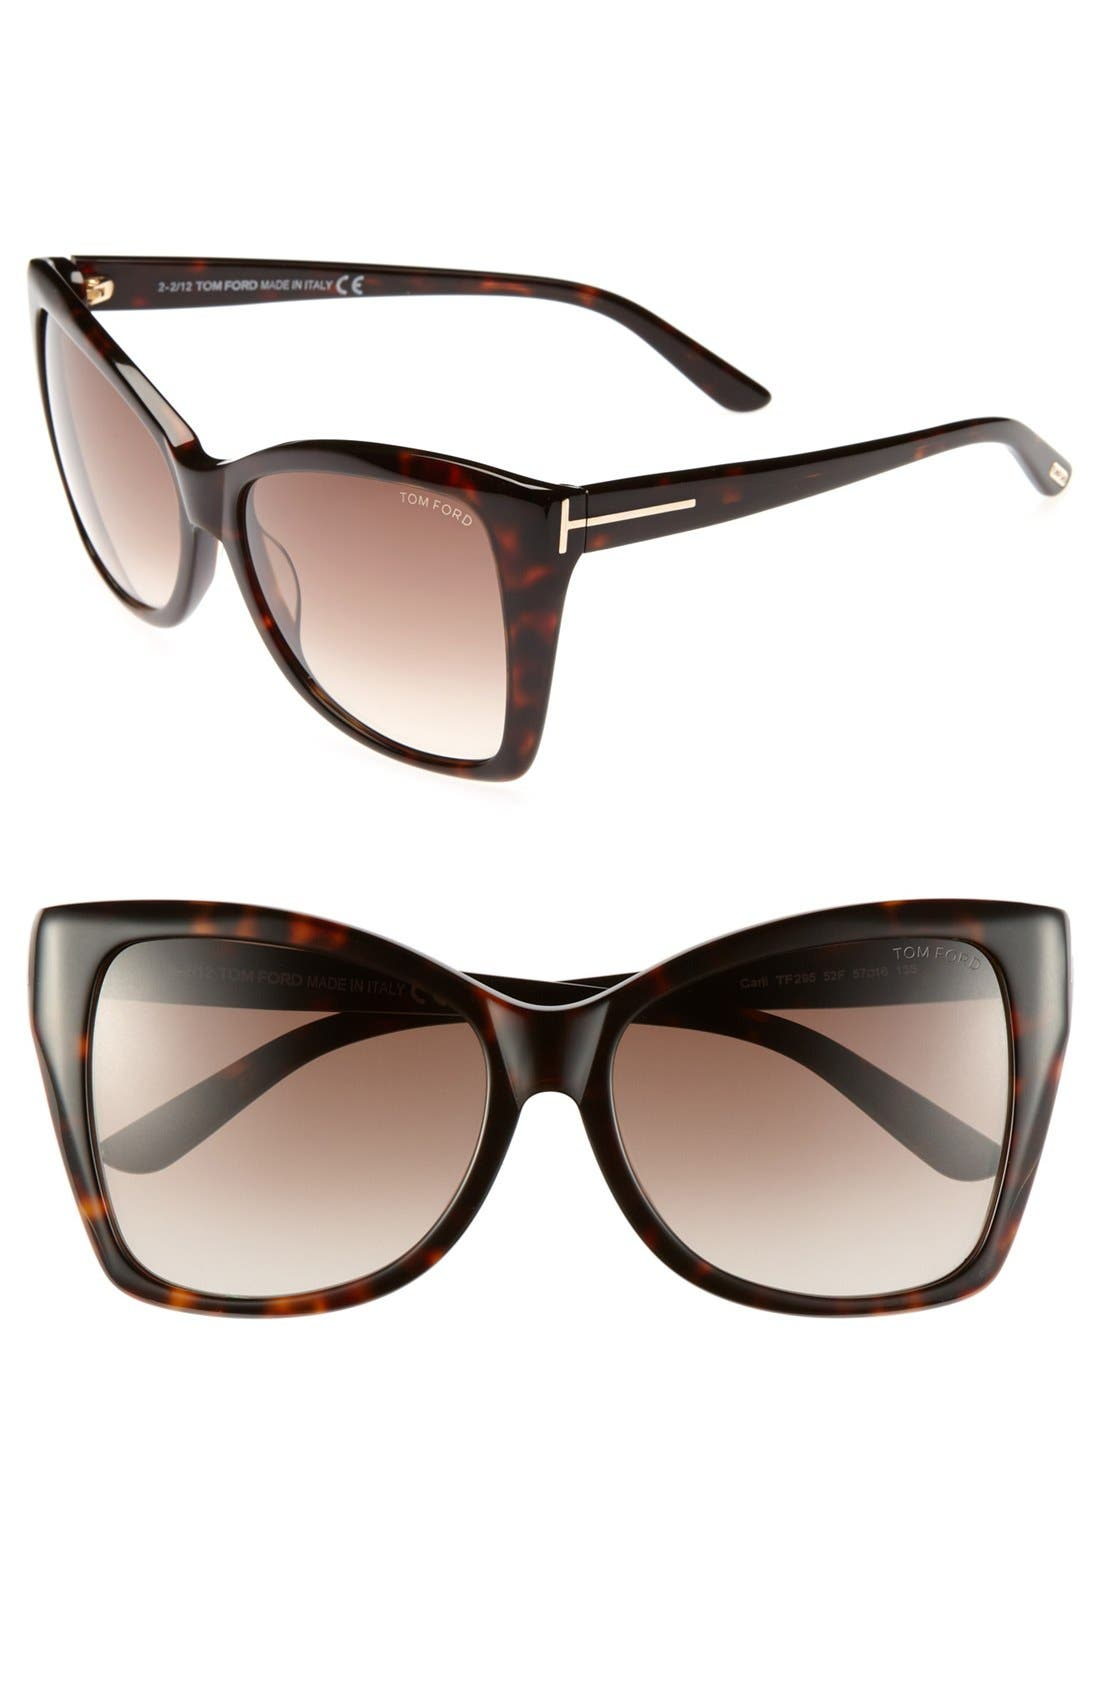 Alternate Image 1 Selected - Tom Ford 'Carli' 57mm Sunglasses